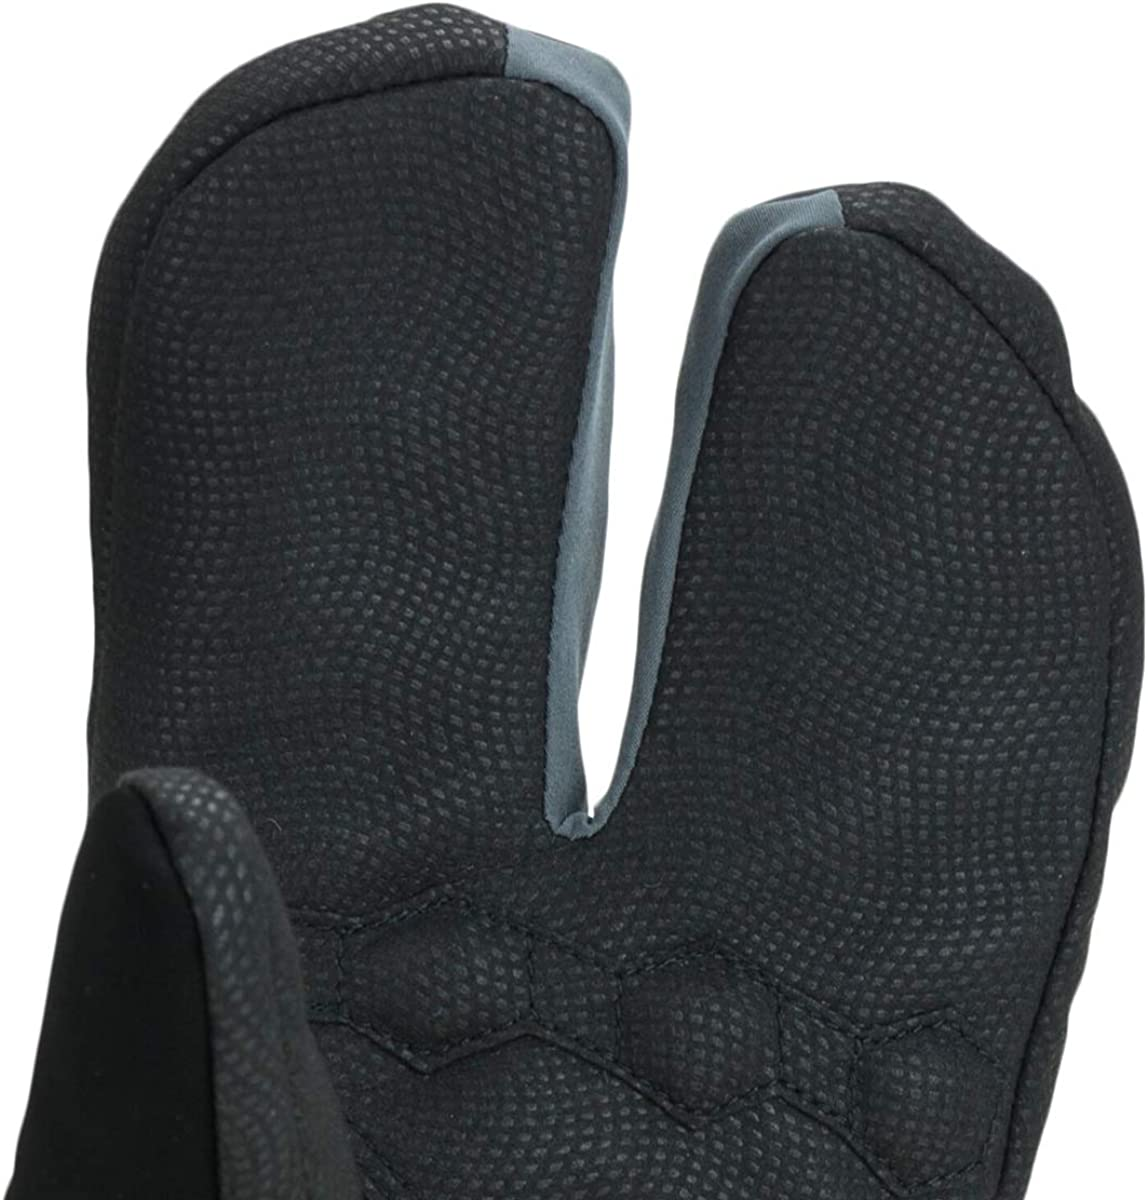 Seal Skinz Waterproof Extreme Cold Weather Cycle Split Finger Guantes Hombre